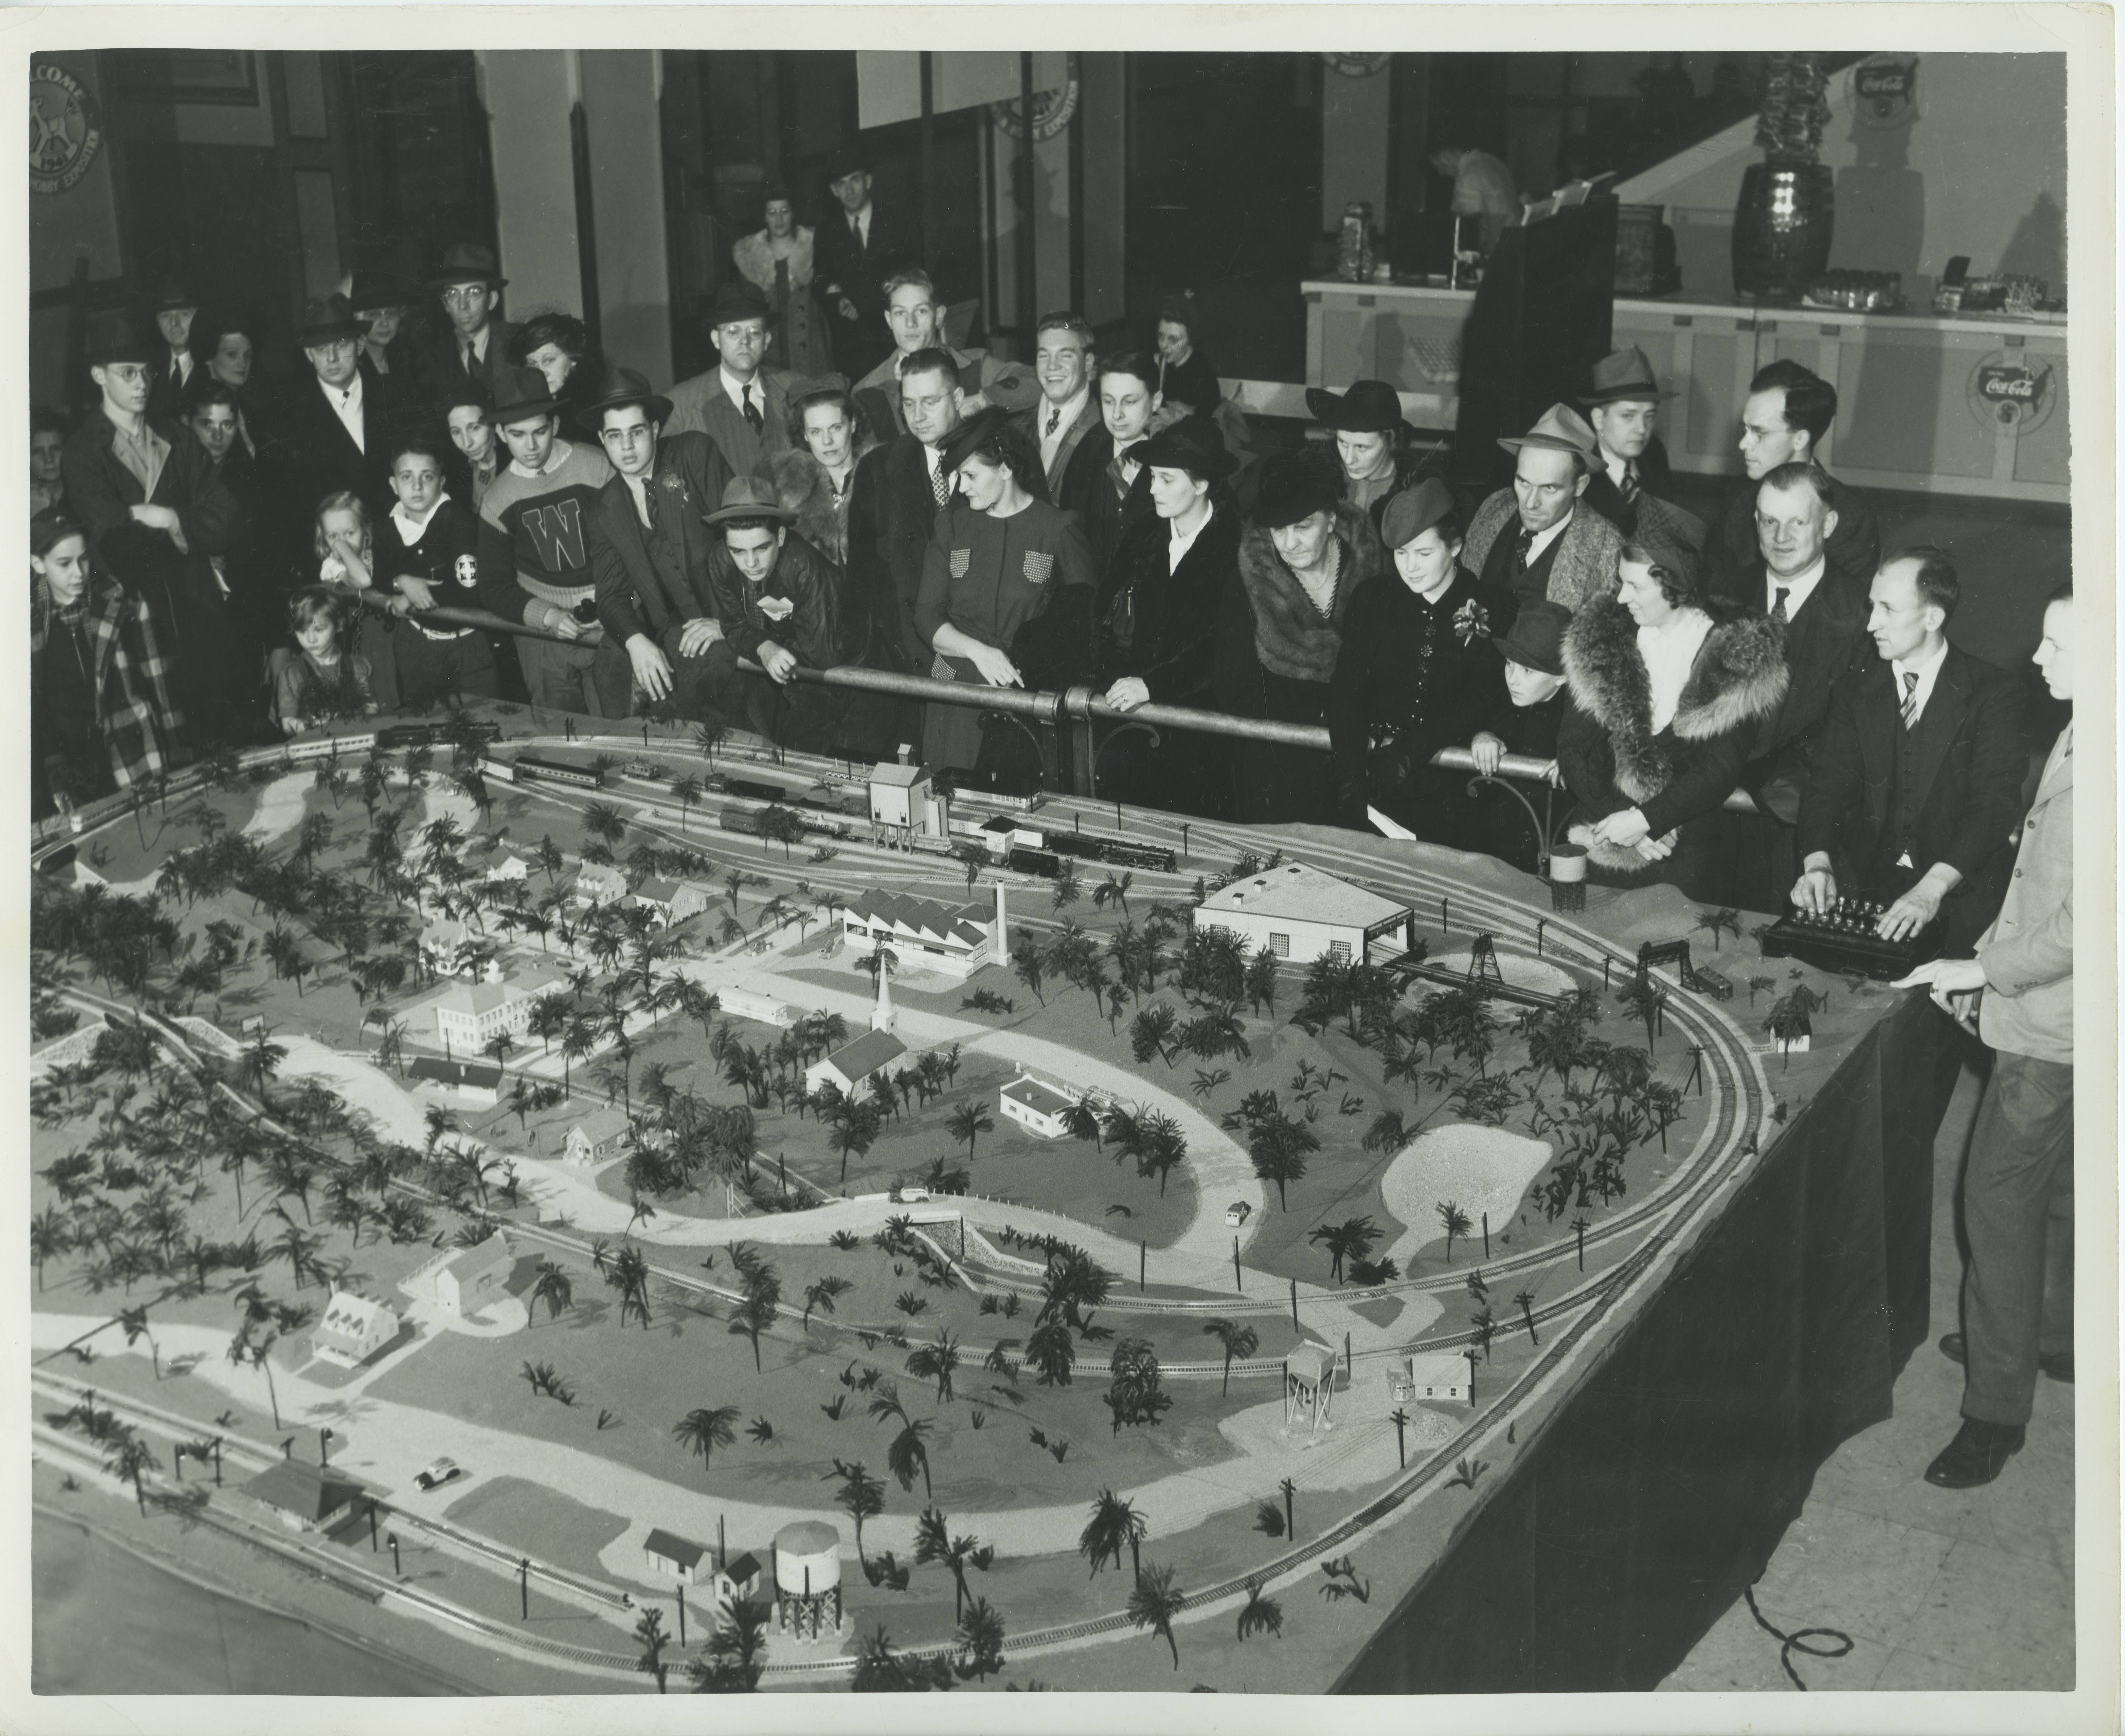 <table class=&quot;lightbox&quot;><tr><td colspan=2 class=&quot;lightbox-title&quot;>Large Model Railroad Display</td></tr><tr><td colspan=2 class=&quot;lightbox-caption&quot;>A crowd gathers around a large scale model railroad at the Wisconsin Hobby Exposition in Milwaukee in 1949.</td></tr><tr><td colspan=2 class=&quot;lightbox-spacer&quot;></td></tr><tr class=&quot;lightbox-detail&quot;><td class=&quot;cell-title&quot;>Source: </td><td class=&quot;cell-value&quot;>From the Historic Photo Collection of the Milwaukee Public Library. Reprinted with permission. <br /><a href=&quot;http://content.mpl.org/cdm/singleitem/collection/HstoricPho/id/2192/rec/2&quot; target=&quot;_blank&quot;>Milwaukee Public Library</a></td></tr><tr class=&quot;filler-row&quot;><td colspan=2>&nbsp;</td></tr></table>